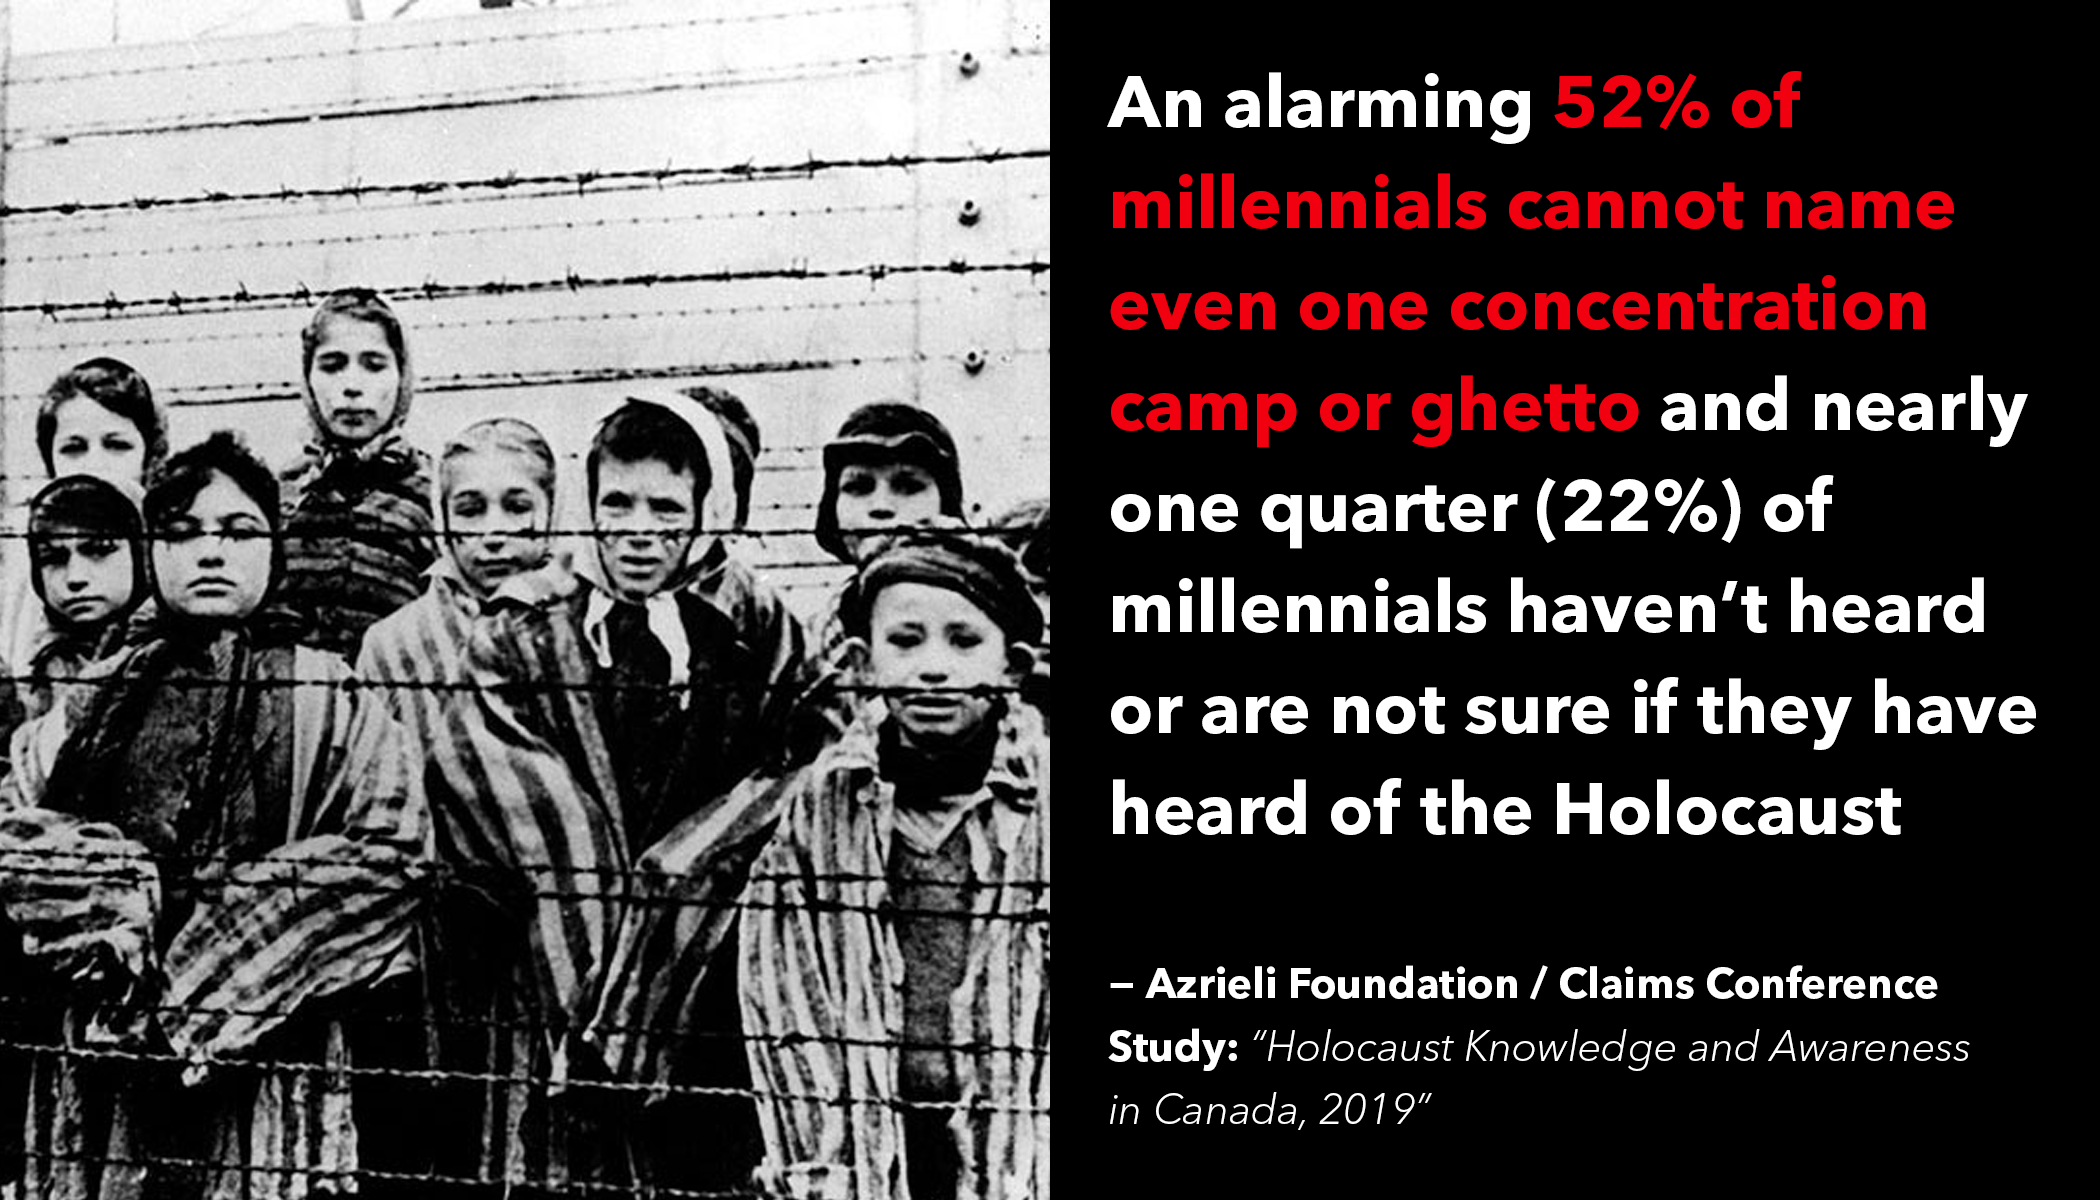 New Survey by the Azrieli Foundation and the Claims Conference Finds Critical Gaps in Holocaust Knowledge